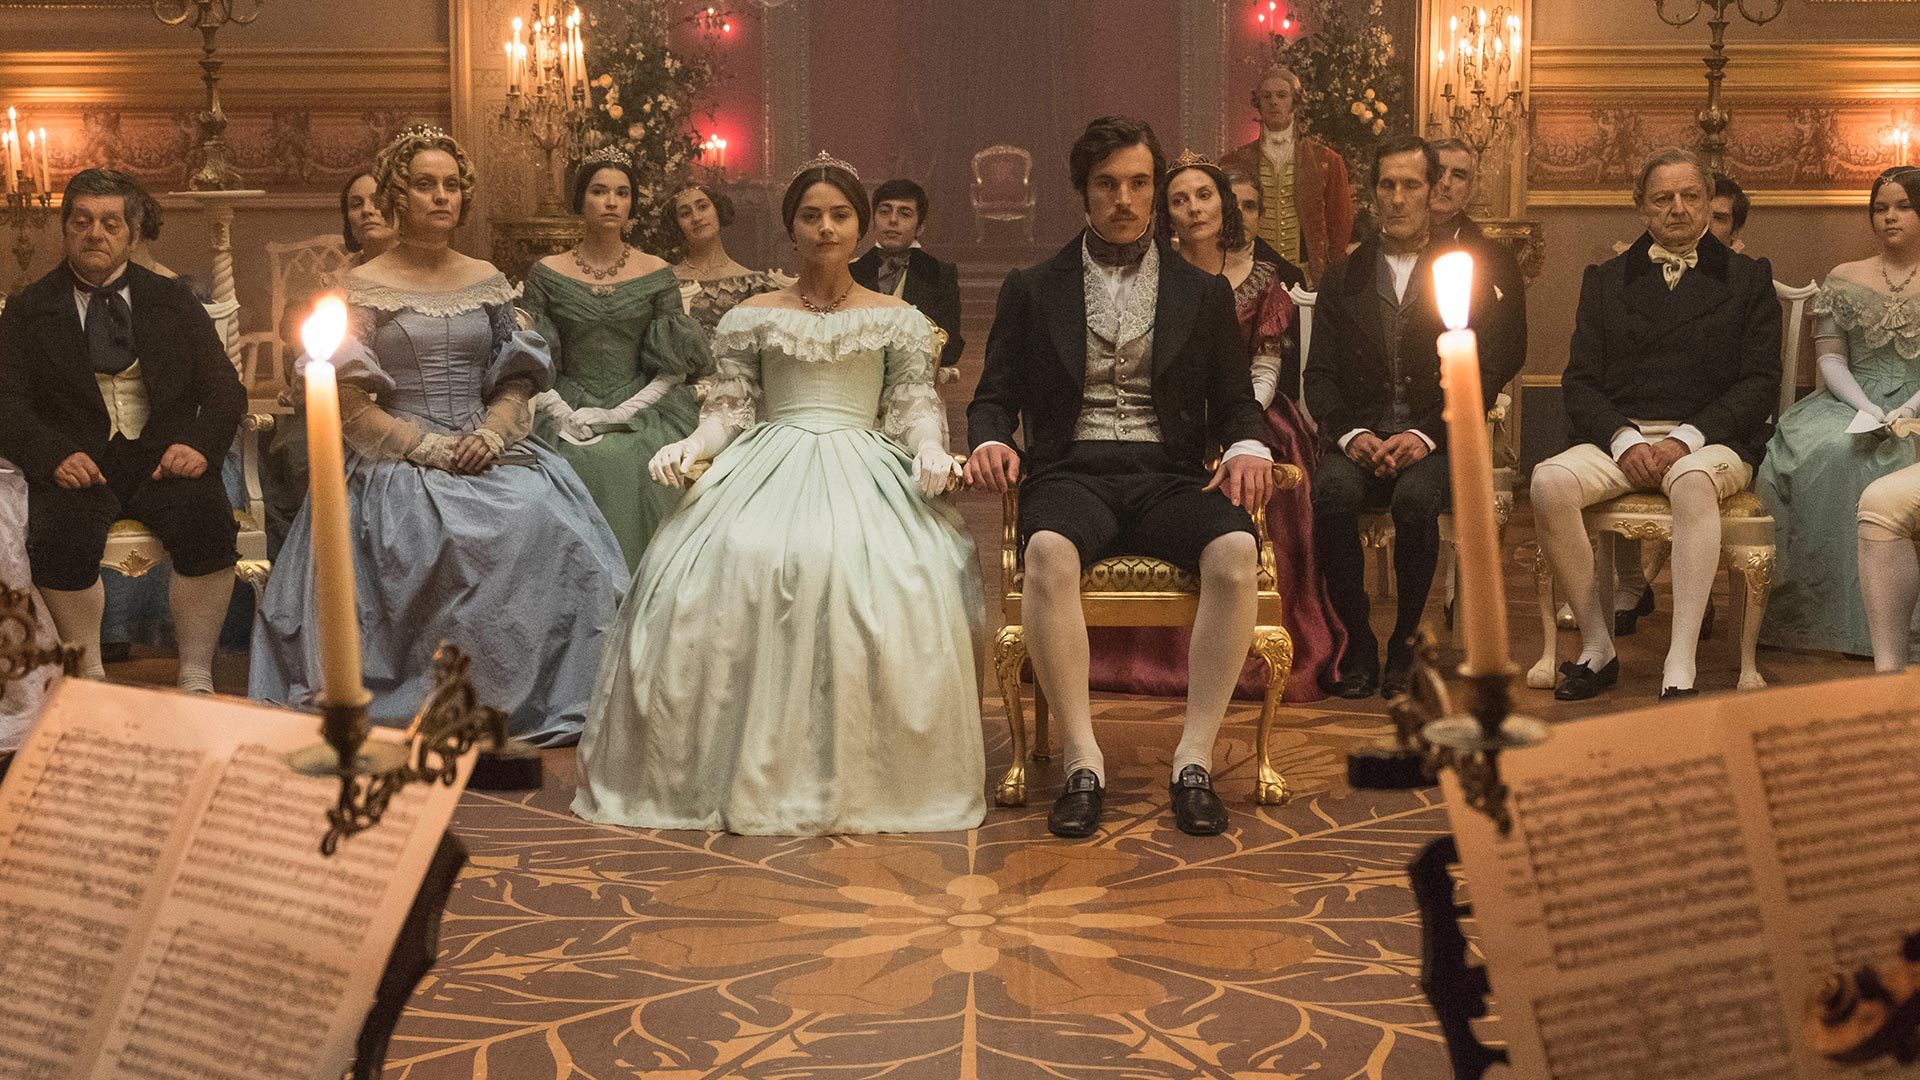 Jenna Coleman as Victoria and Tom Hughes as Prince Albert